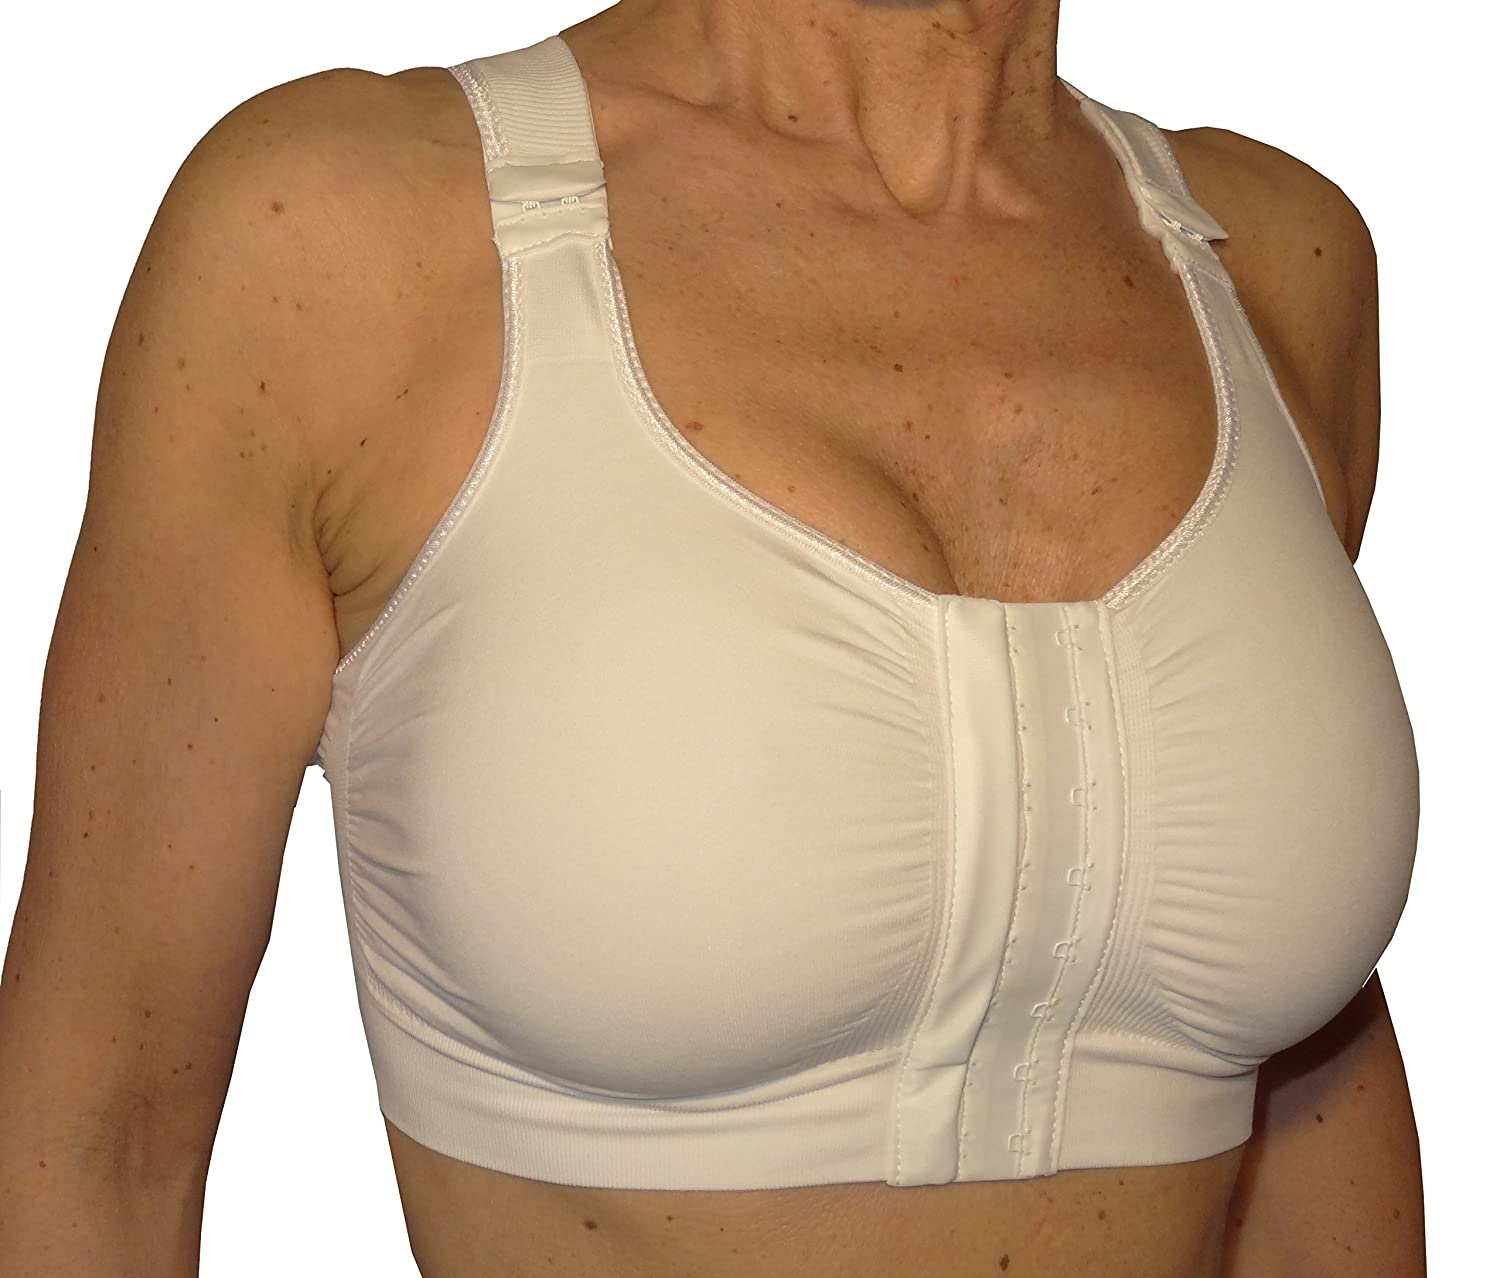 Amazon.com: CzSalus Post-op bra after breast enlargement or reduction - Nude size XL: Baby